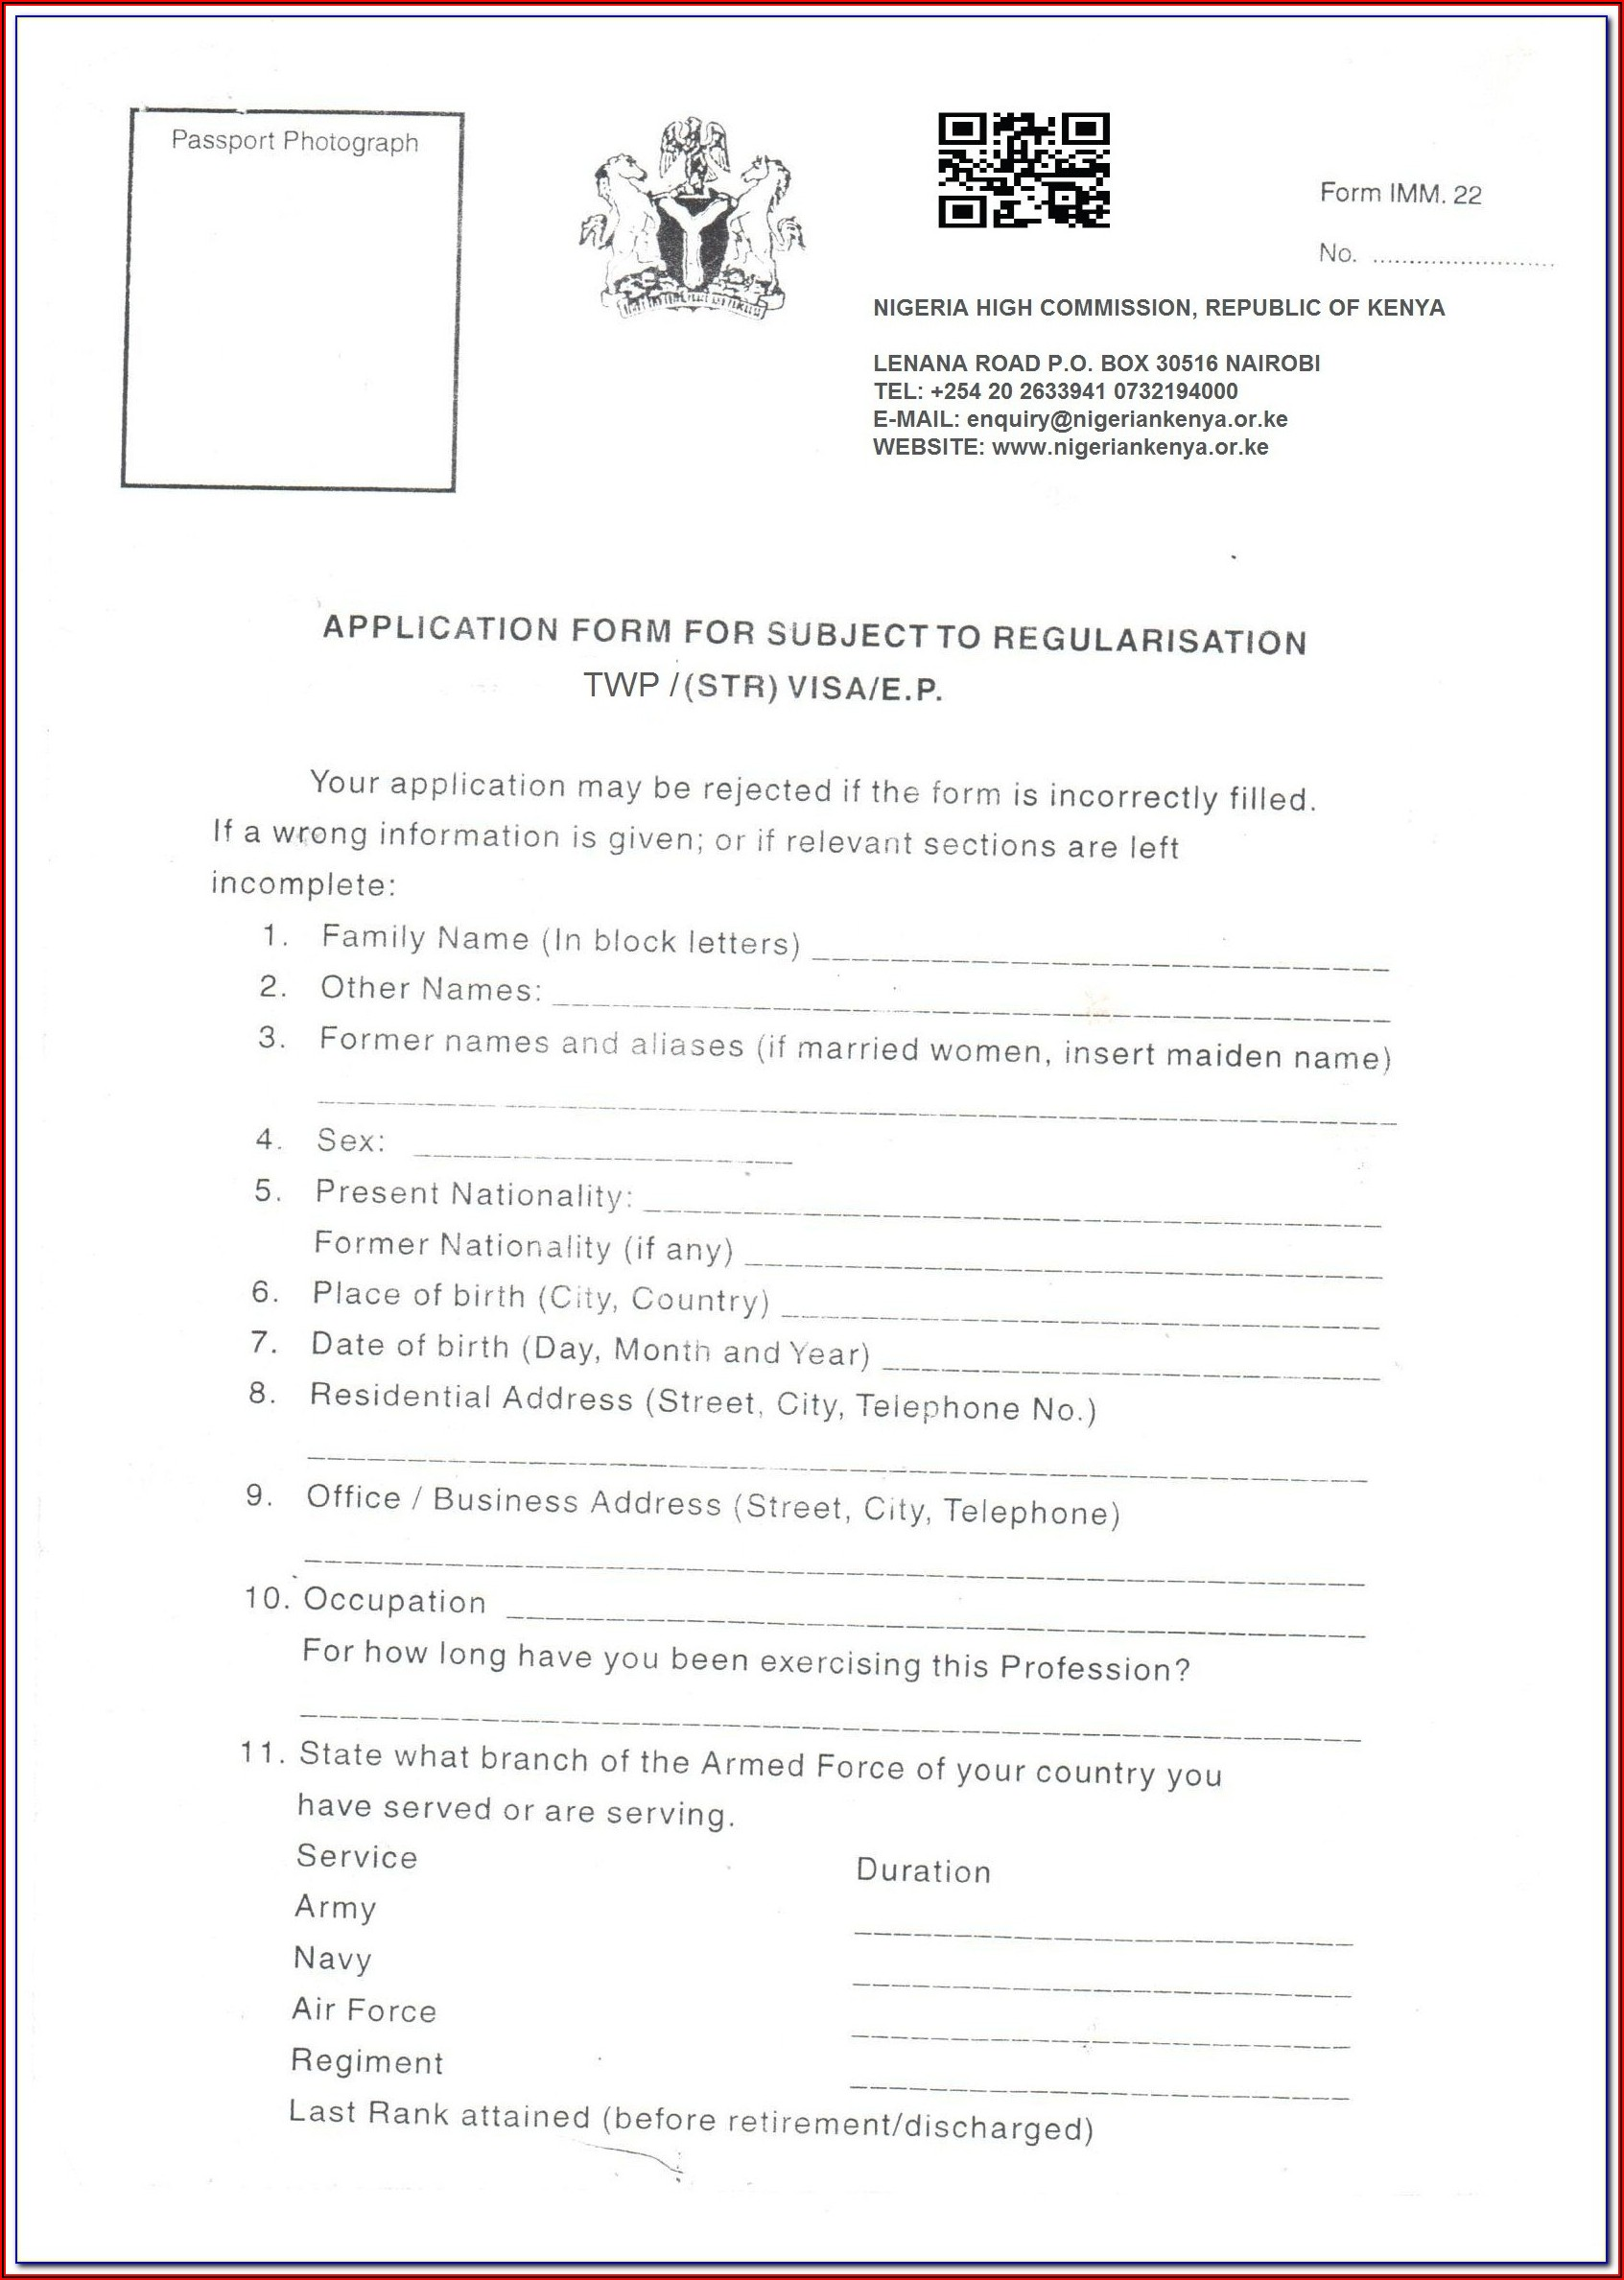 Nigeria Visa Application Form Imm 22